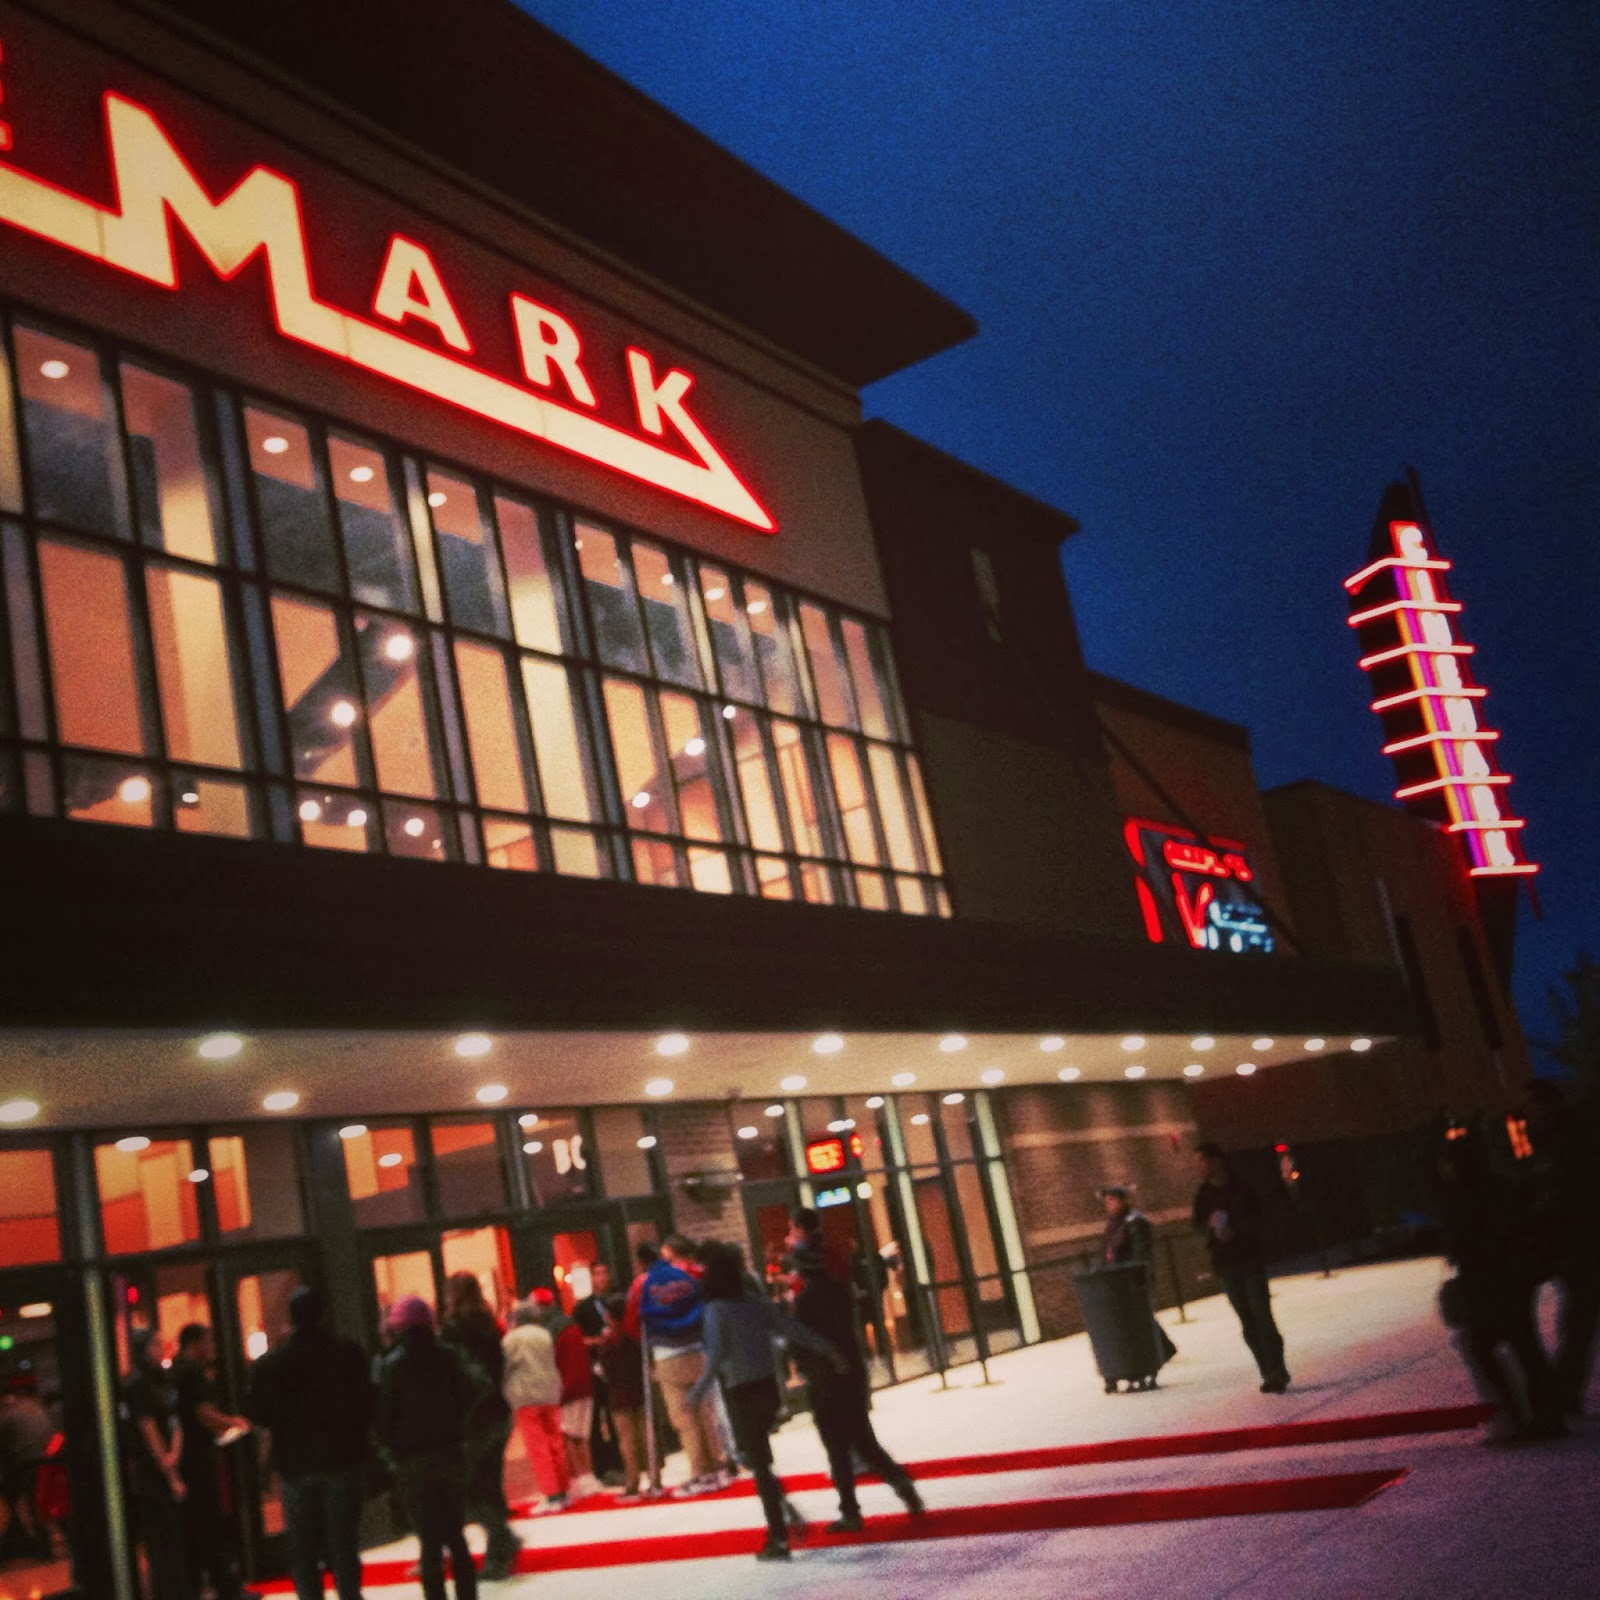 Cinemark Theaters NextGen Opening In Pharr TX The Indie Balance I Hope For